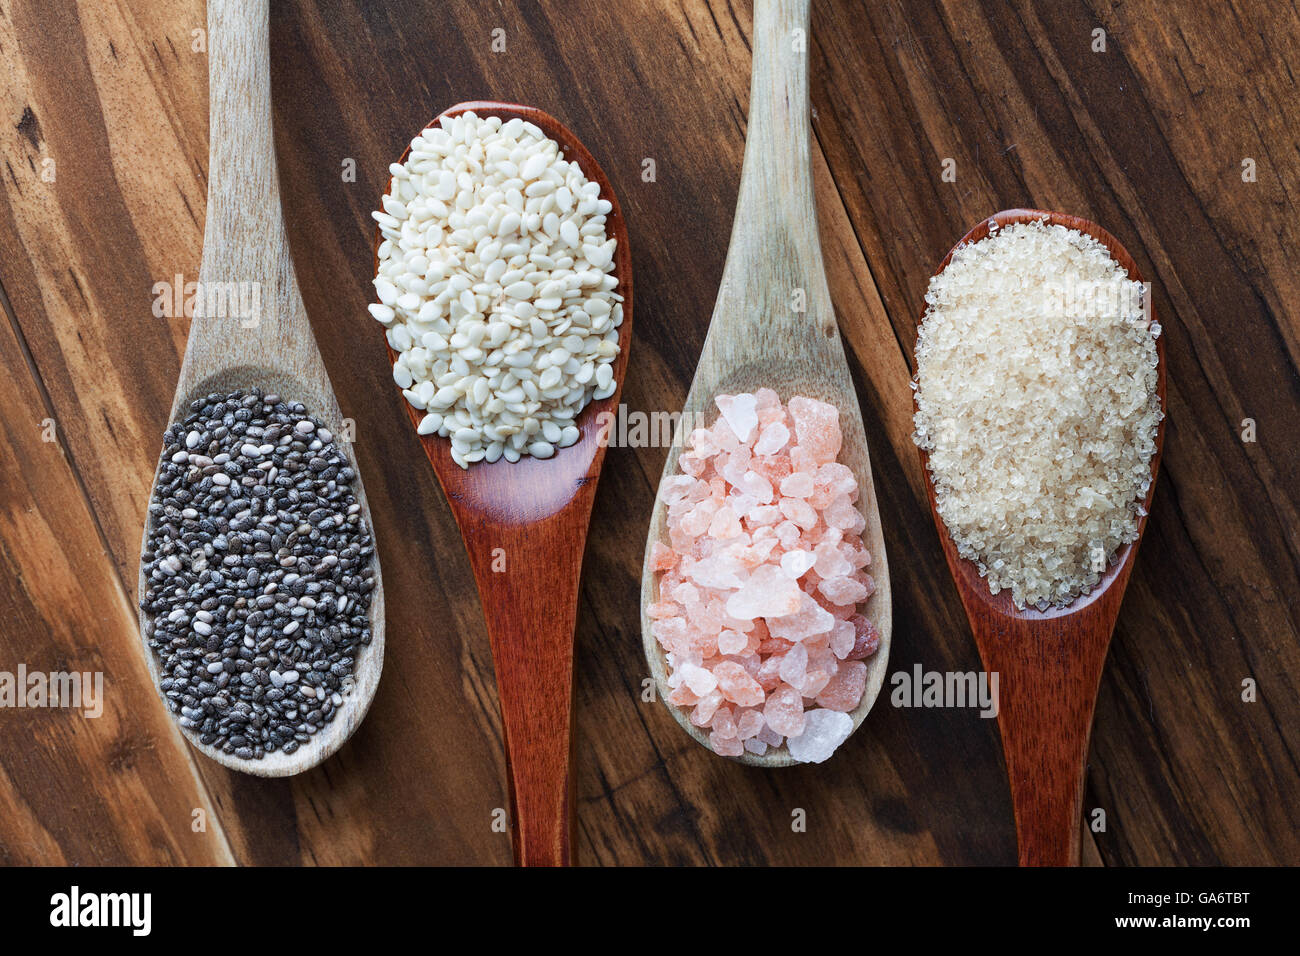 Himalayan pink salt, raw cane sugar, sesame and black Chia seeds in wooden spoons, top view - Stock Image